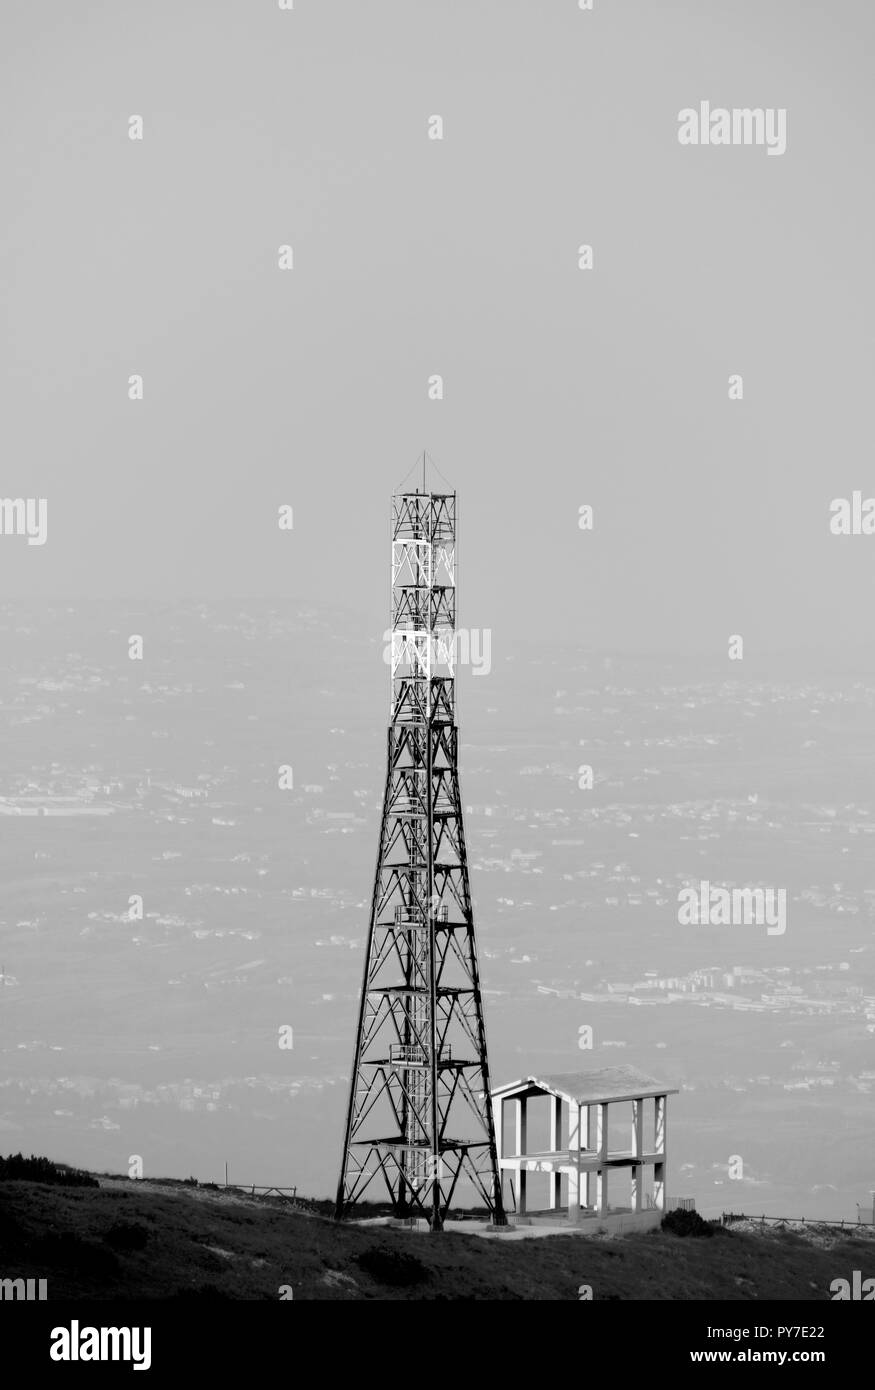 Structural analogy between antenna and building - Stock Image